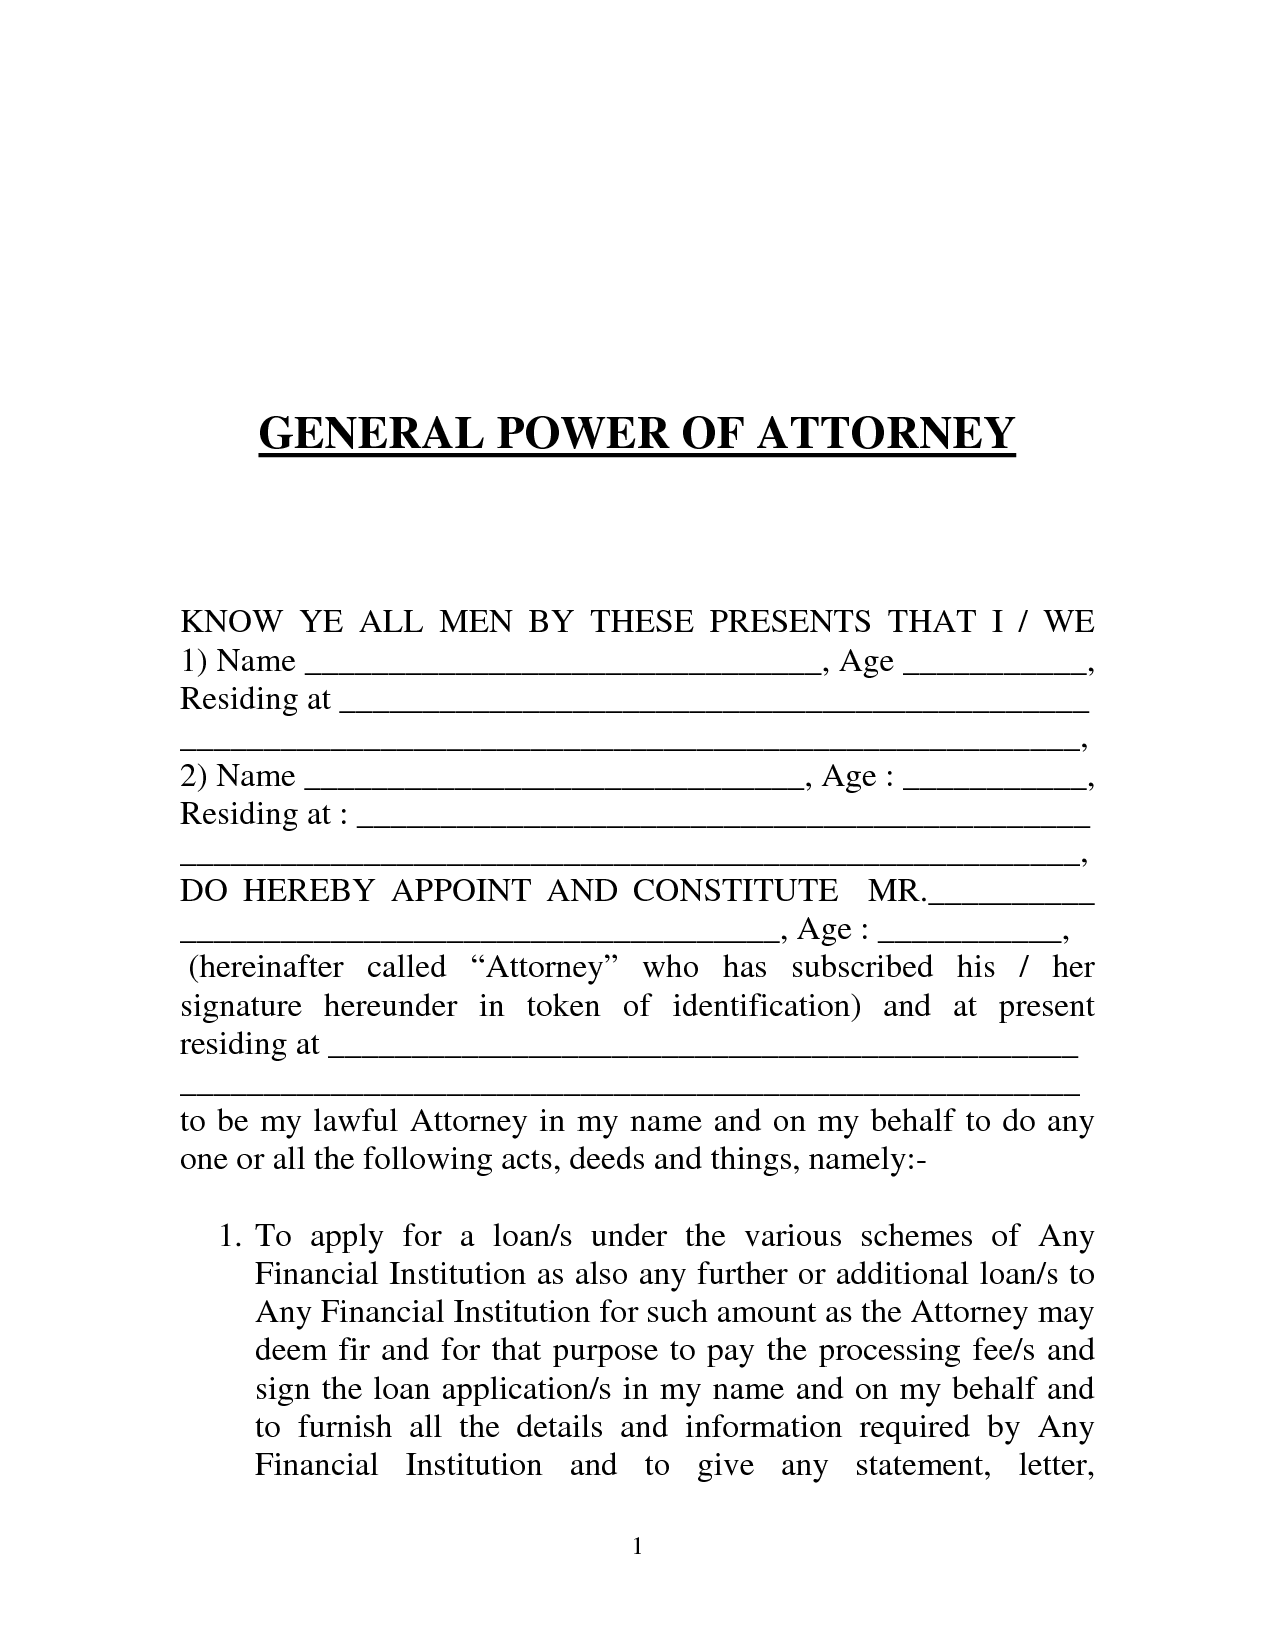 power of attorney example